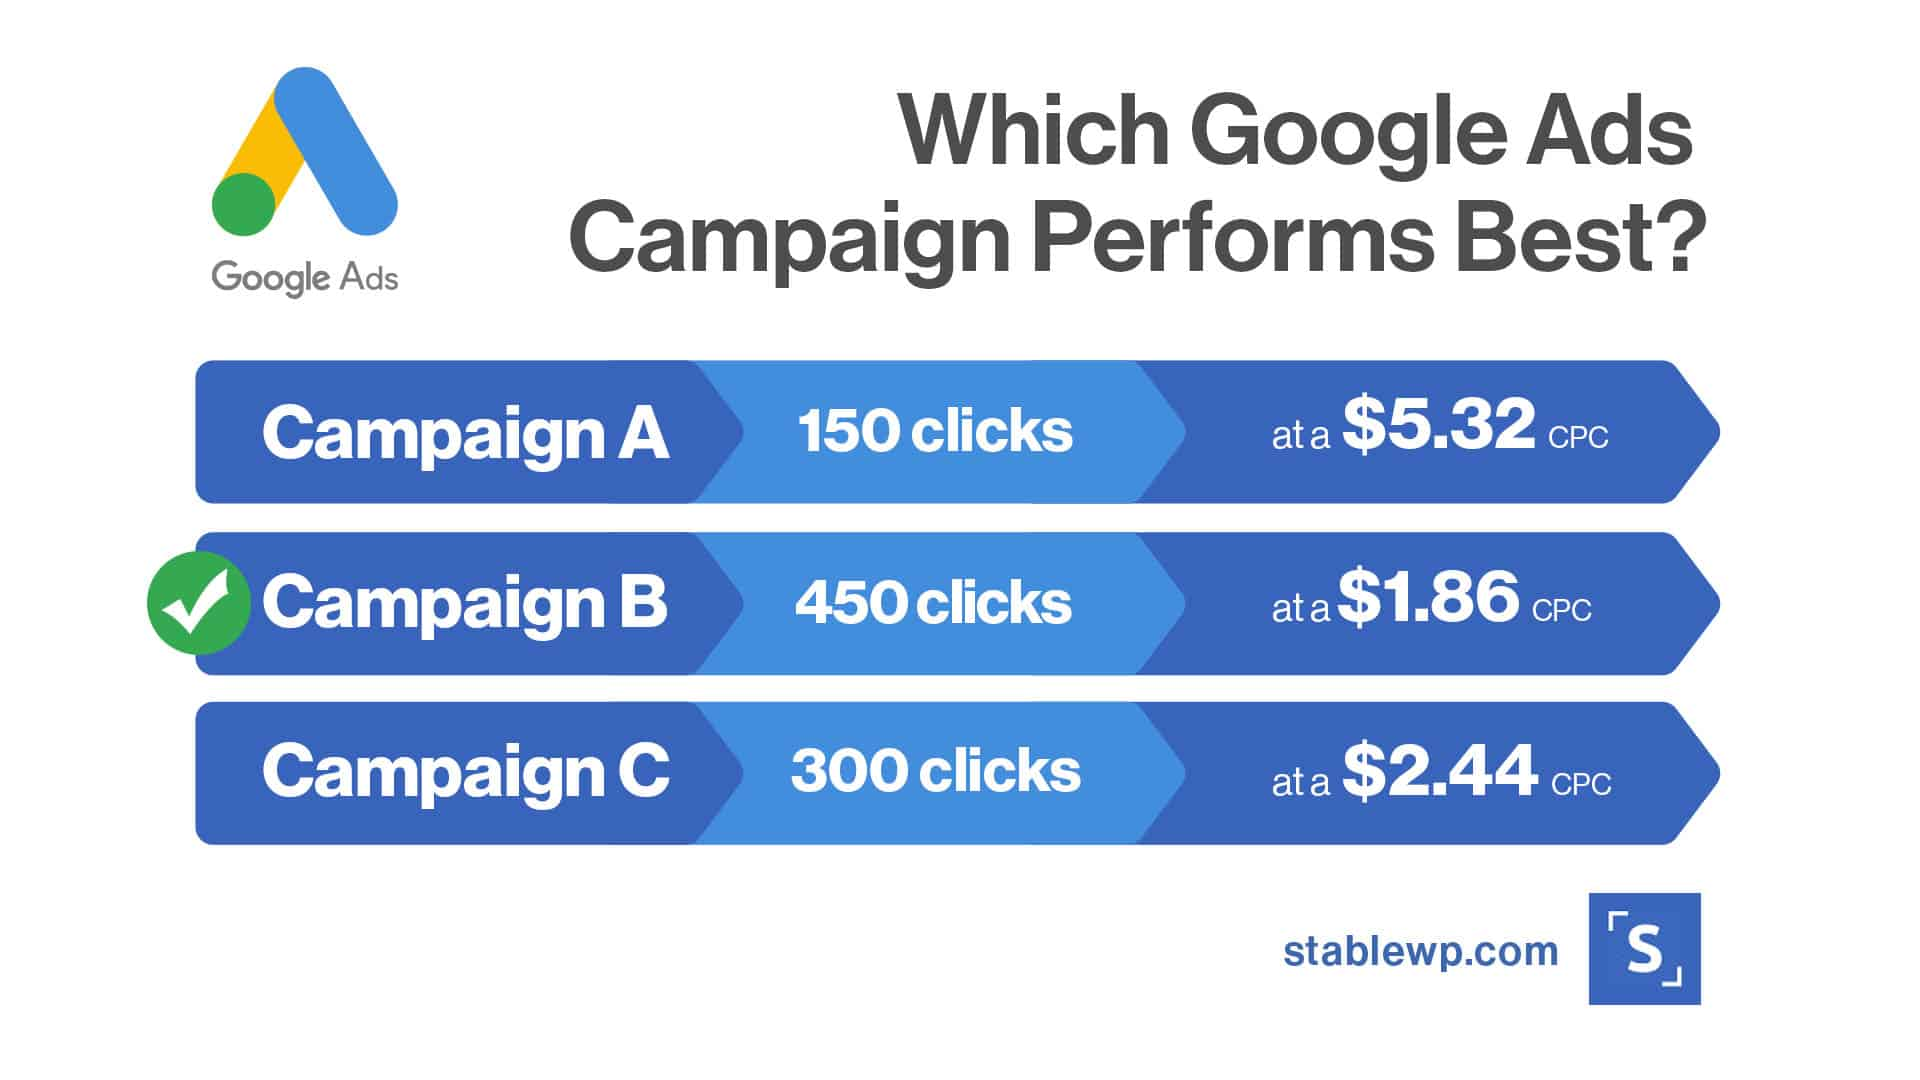 which Google Ads campaign performs best based on clicks and Avg. CPC